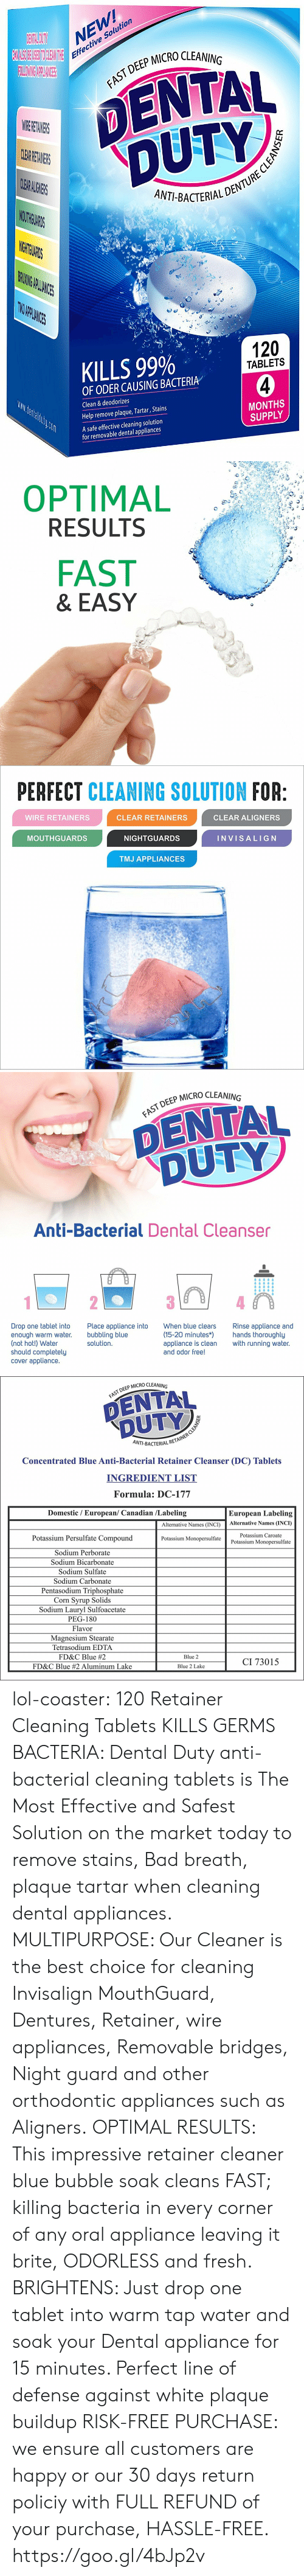 Bad, Fresh, and Lol: NEW  e Solution  Effectiv  P MICRO CLEANING  DENTAL  DUTY  AST DEEP  CL  ANT-BACTERIALD  THG  PLIANIES  KILLS 99%  120  TABLETS  OF ODER CAUSING BACTERIA  Clean & deodorizes  Help remove plaque, Tartar, Stains  A safe effective cleaning solution  MONTHS  SUPPLY  for removable dental appliances   OPTIMAL  RESULTS  FAST  & EASY   PERFECT CLEANING SOLUTION FOR  WIRE RETAINERS  CLEAR RETAINERS  CLEAR ALIGNERS  MOUTHGUARDS  NIGHTGUARDS  INVISALIG N  TMJ APPLIANCES   DEEP MICRO CLEANING  DENTAL  DUTY  Anti-Bacterial Dental Cleanser  Drop one tablet into  enough warm water.  (not hot!) Water  should completely  cover appliance.  Place appliance into  bubbling blue  solution  When blue clears  Rinse appliance and  (15-20 minutes*hands thoroughly  appliance is clean with running water.  and odor free!   P MICRO CLEANING  FAST DEEP  NT-BACTERIAL R  Concentrated Blue Anti-Bacterial Retainer Cleanser (DC) Tablets  INGREDIENT LIST  Formula: DC-177  Domestic / European/ Canadian /Labeling  European Labeling  Alternative Names (INCI)Alternative Names (INCI)  Potassium Persulfate Compound  Sodium Perborate  Sodium Bicarbonate  Sodium Sulfate  Sodium Carbonate  Pentasodium Triphosphate  Corn Svrup Solids  Sodium Lauryl Sulfoacetate  PEG-180  Flavor  Magnesium Stearate  Tetrasodium EDTA  FD&C Blue #2  FD&C Blue #2 Aluminum Lake  Potassium Caroate  Potassium Monopersulfate  Potassium Monopersulfate  Blue 2  CI 73015  Blue 2 Lake lol-coaster:    120 Retainer Cleaning Tablets KILLS GERMS  BACTERIA: Dental Duty anti-bacterial cleaning tablets is The Most Effective and Safest Solution on the market today to remove stains, Bad breath, plaque  tartar when cleaning dental appliances. MULTIPURPOSE: Our Cleaner is the best choice for cleaning Invisalign MouthGuard, Dentures, Retainer, wire appliances, Removable bridges, Night guard and other orthodontic appliances such as Aligners. OPTIMAL RESULTS: This impressive retainer cleaner blue bubble soak cleans FAST; killing bacteria in every corner of any oral appliance leaving it brite, ODORLESS and fresh. BRIGHTENS: Just drop one tablet into warm tap water and soak your Dental appliance for 15 minutes. Perfect line of defense against white plaque buildup RISK-FREE PURCHASE: we ensure all customers are happy or our 30 days return policiy with FULL REFUND of your purchase, HASSLE-FREE. https://goo.gl/4bJp2v